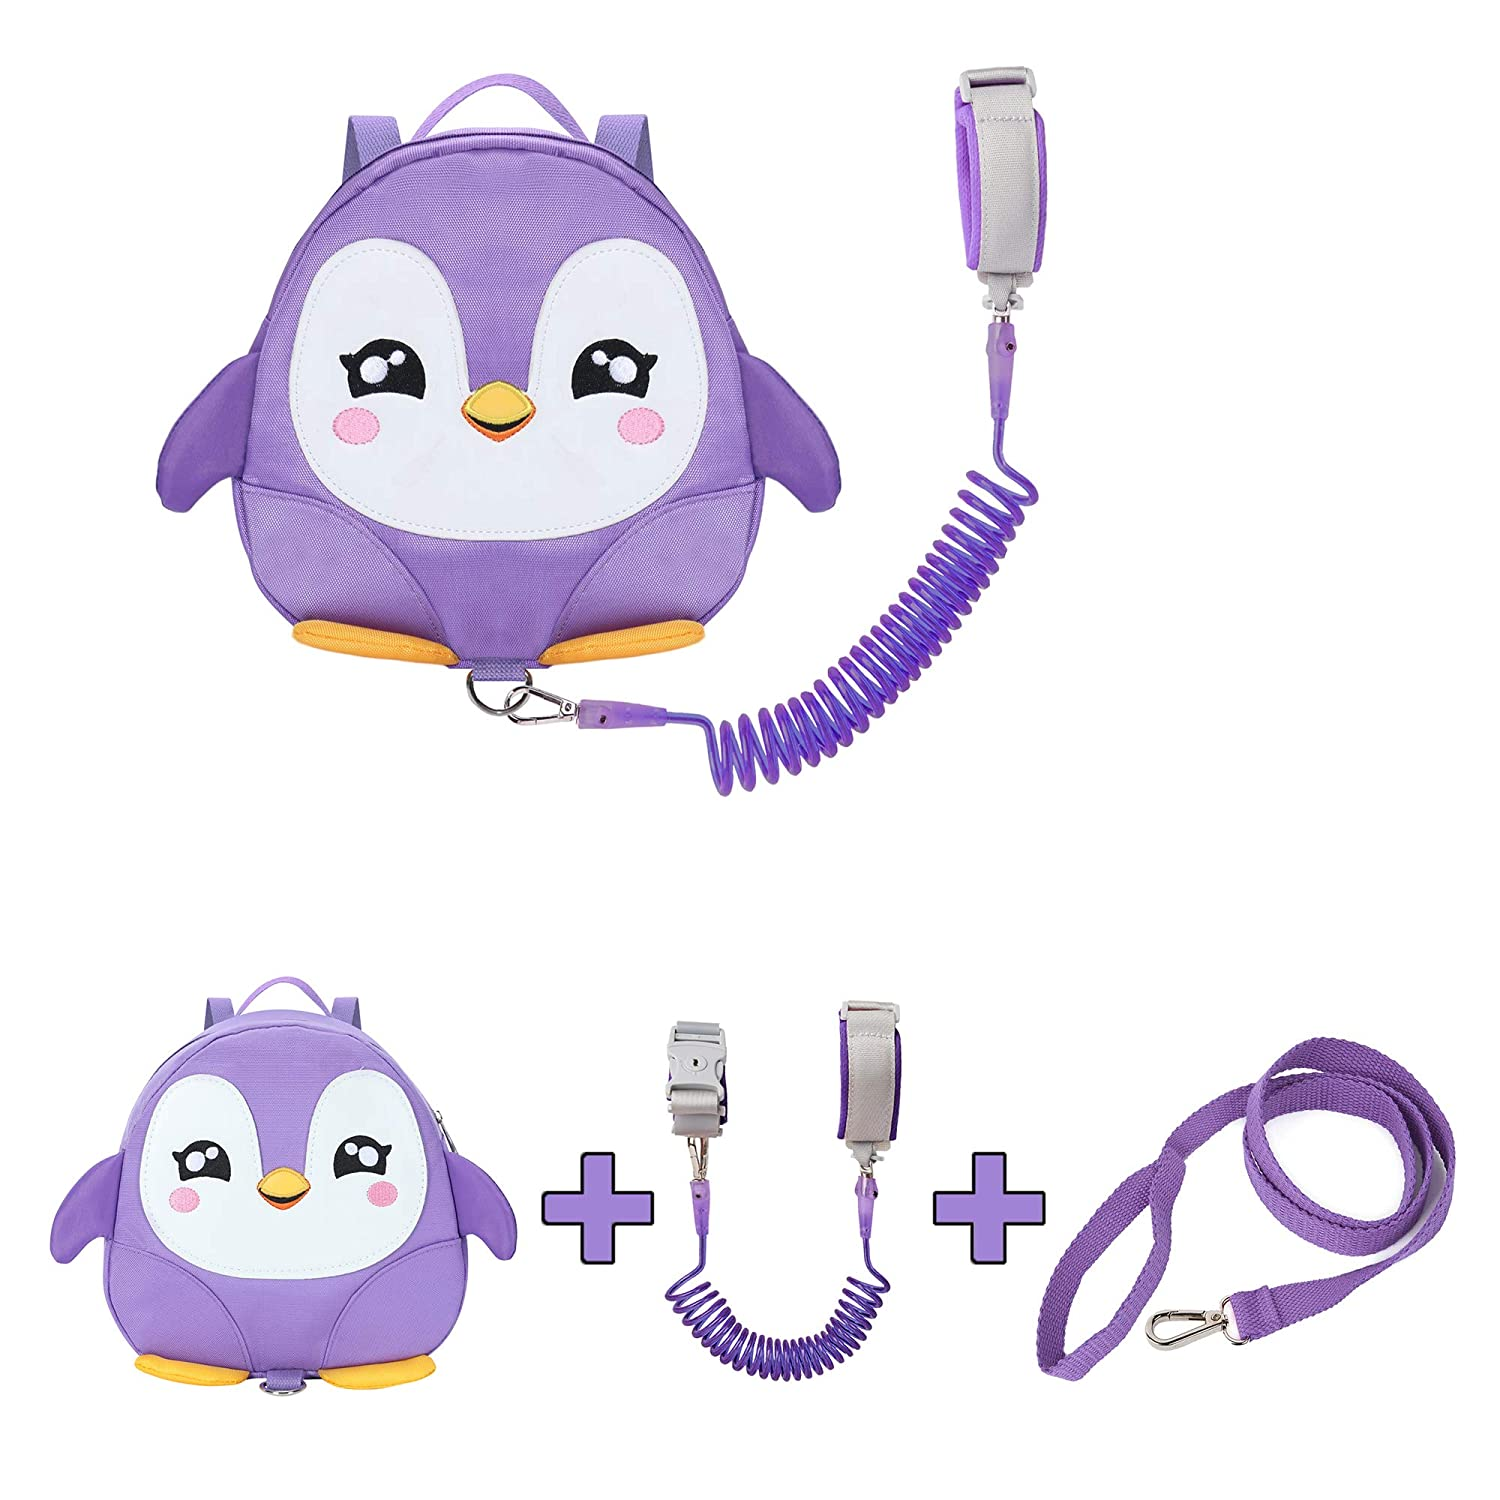 EPLAZA Toddler Leashes Penguin-Like Backpacks with Anti Lost Wrist Link Wristband for 1.5 to 3 Years Kids Girls Boys Safety (Penguin Light Purple)